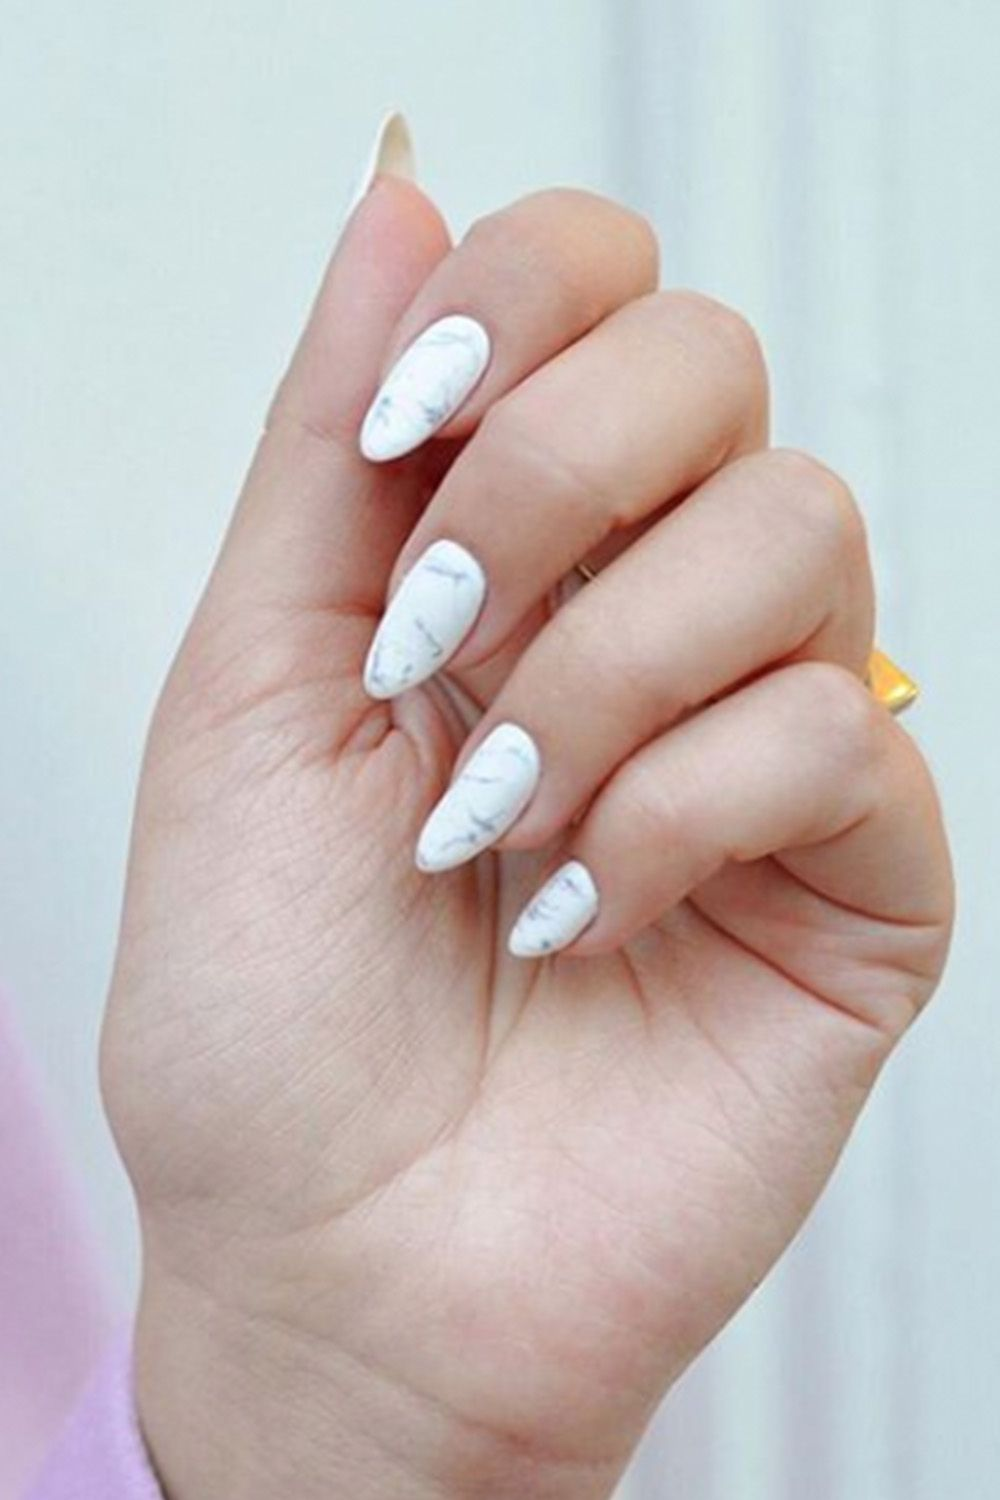 15 almond shaped nail designs cute ideas for almond nails solutioingenieria Images